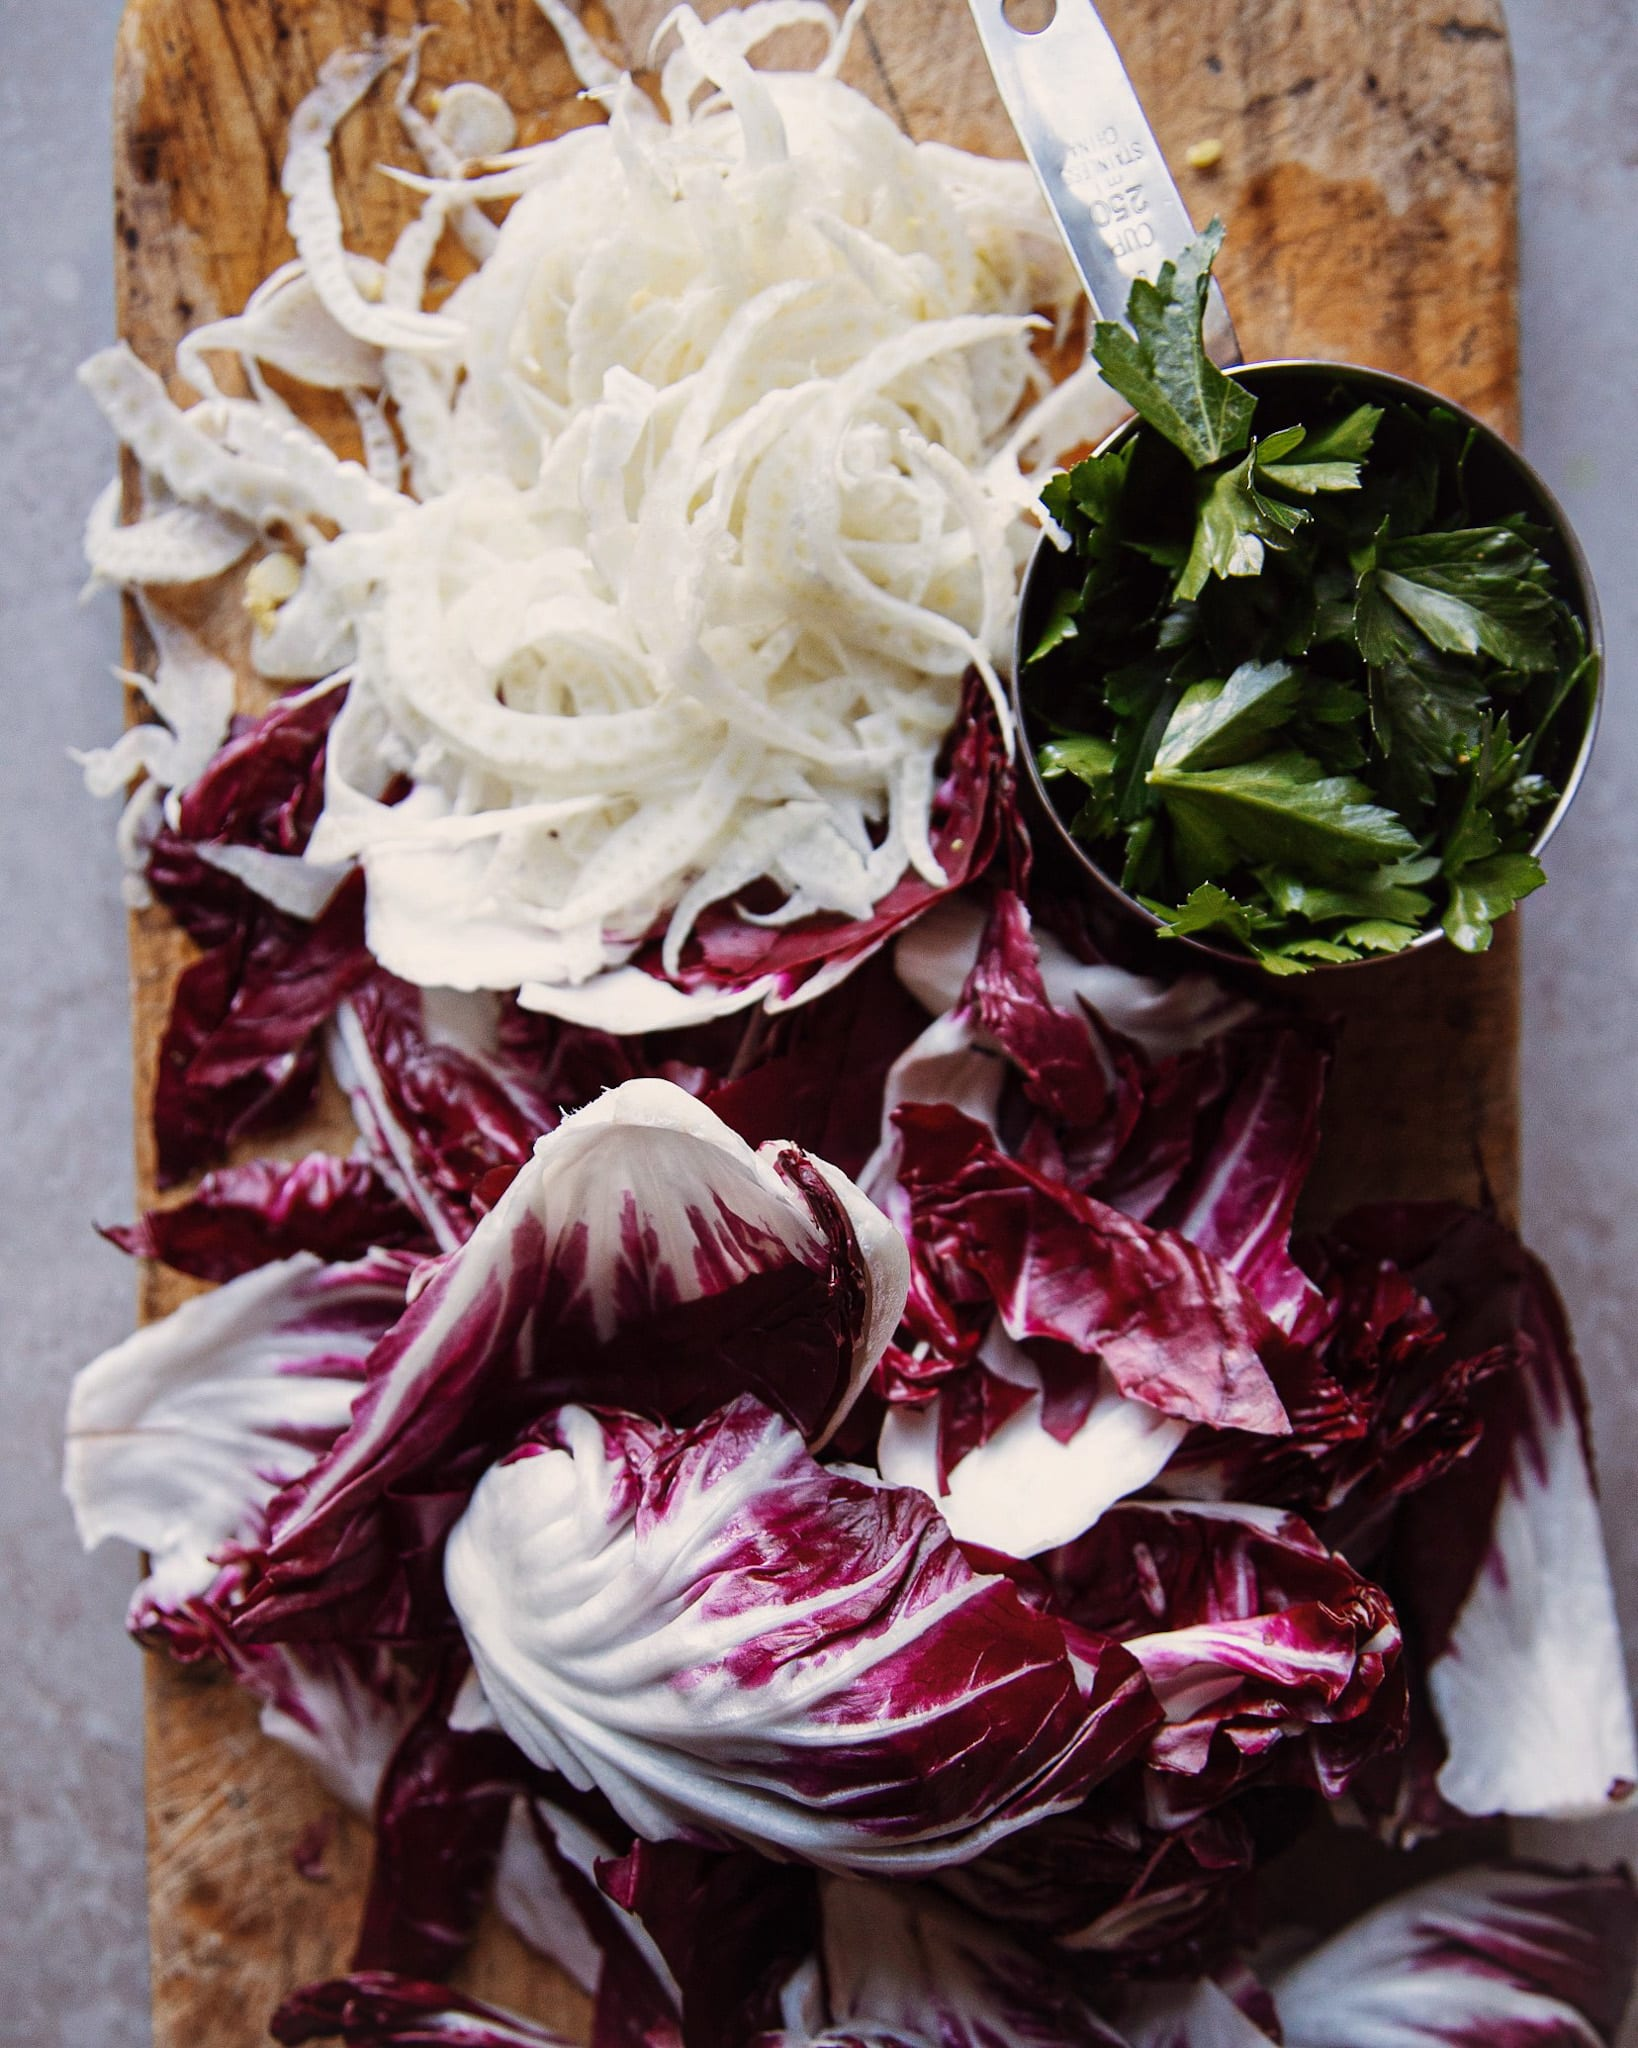 Torn radicchio, shaved fennel and a cup of parsley leaves on a wood chopping board.